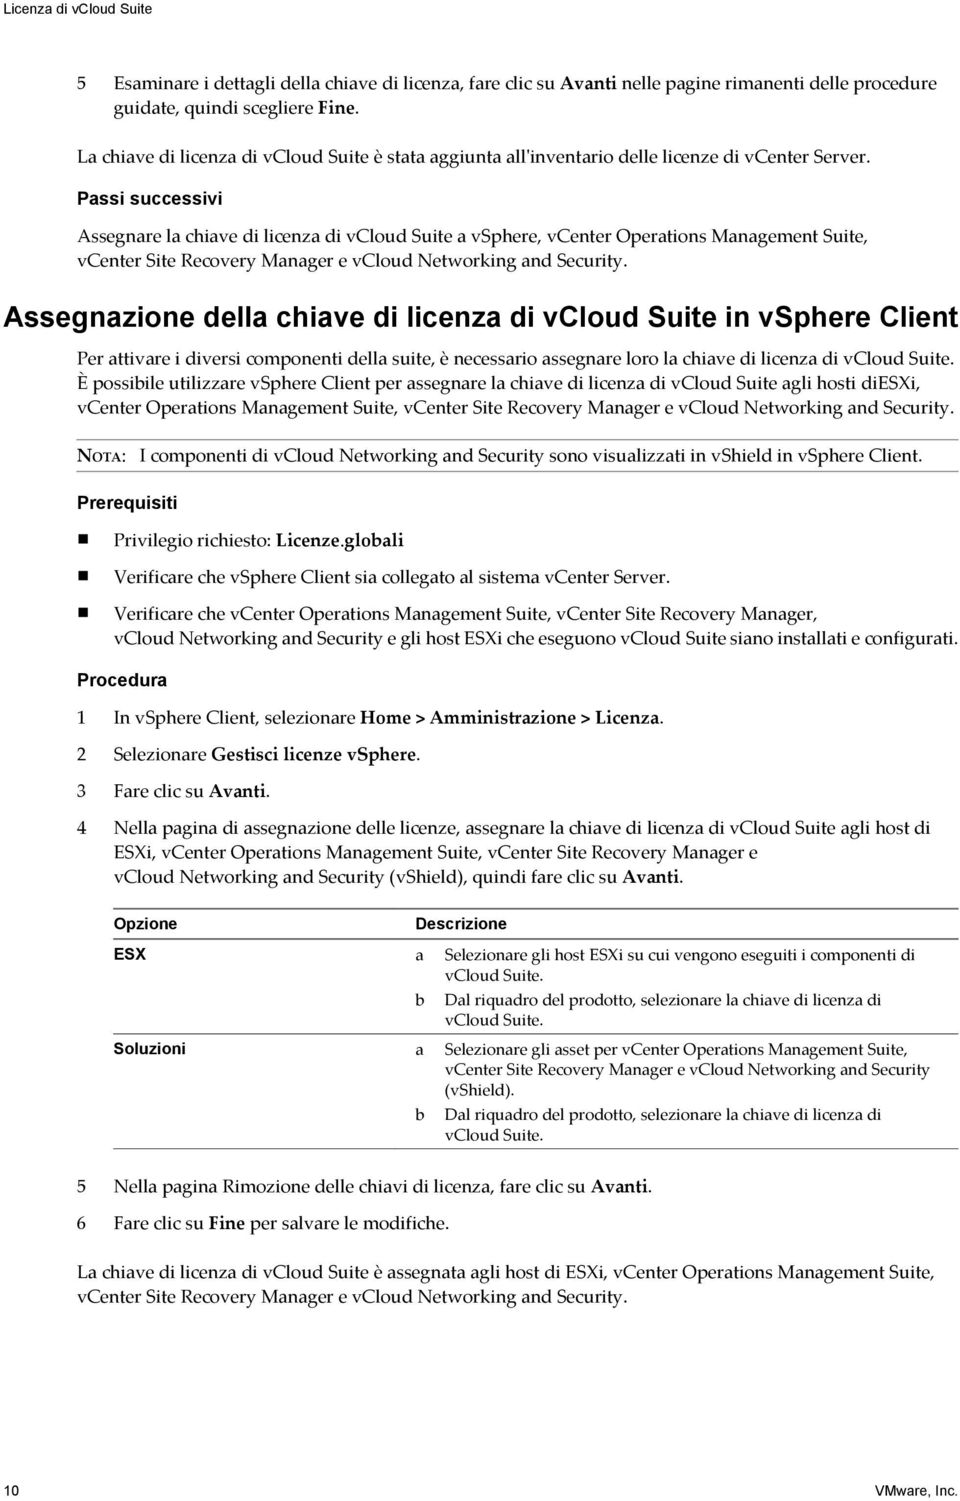 Passi successivi Assegnare la chiave di licenza di vcloud Suite a vsphere, vcenter Operations Management Suite, vcenter Site Recovery Manager e vcloud Networking and Security.